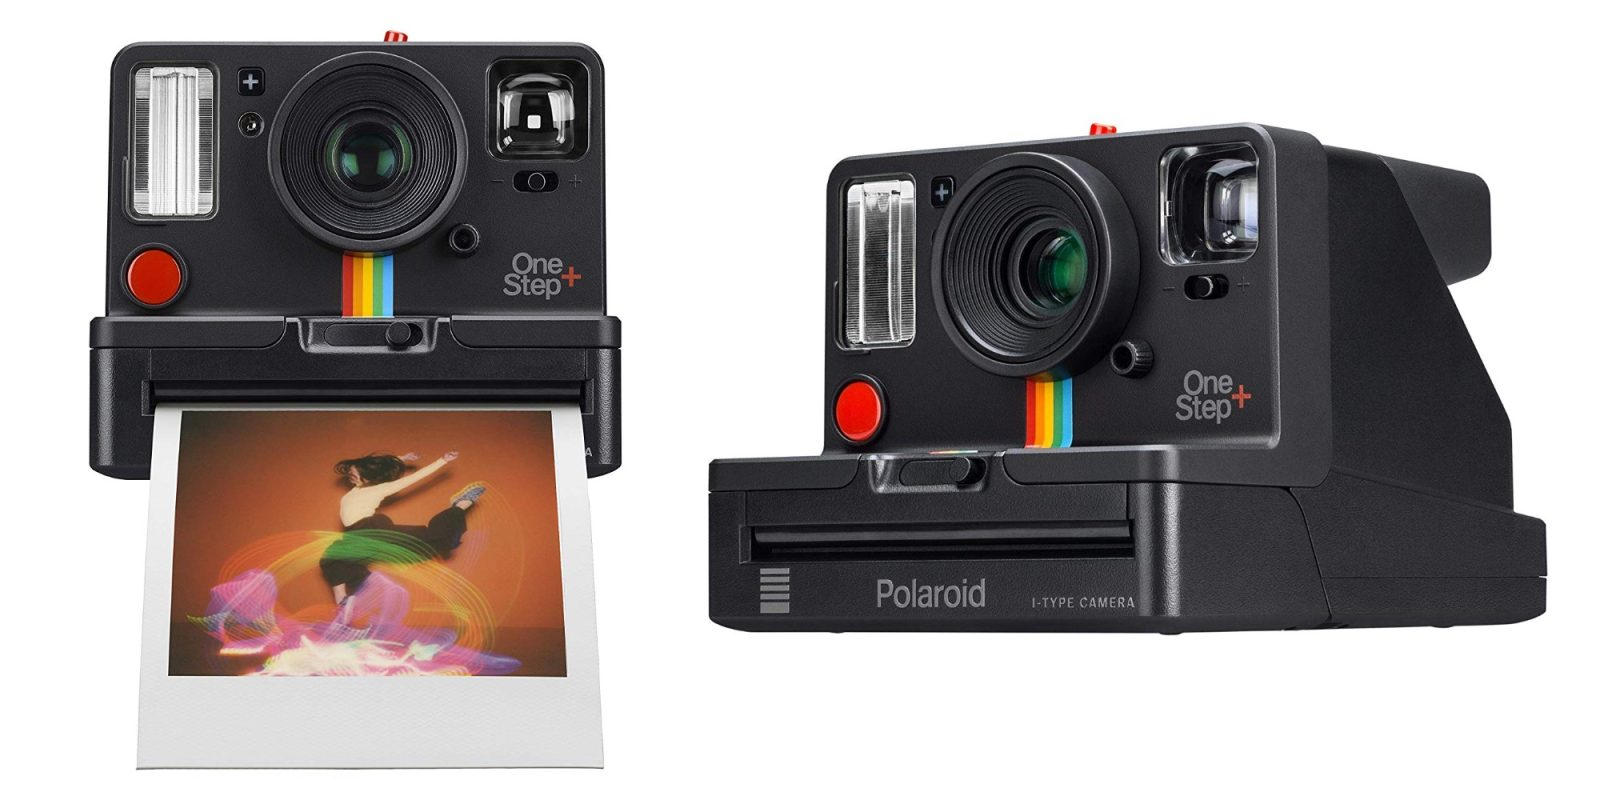 Polaroid's Onestep+ Instant Camera pairs with your iPhone via Bluetooth, now at $112 (All-time low)